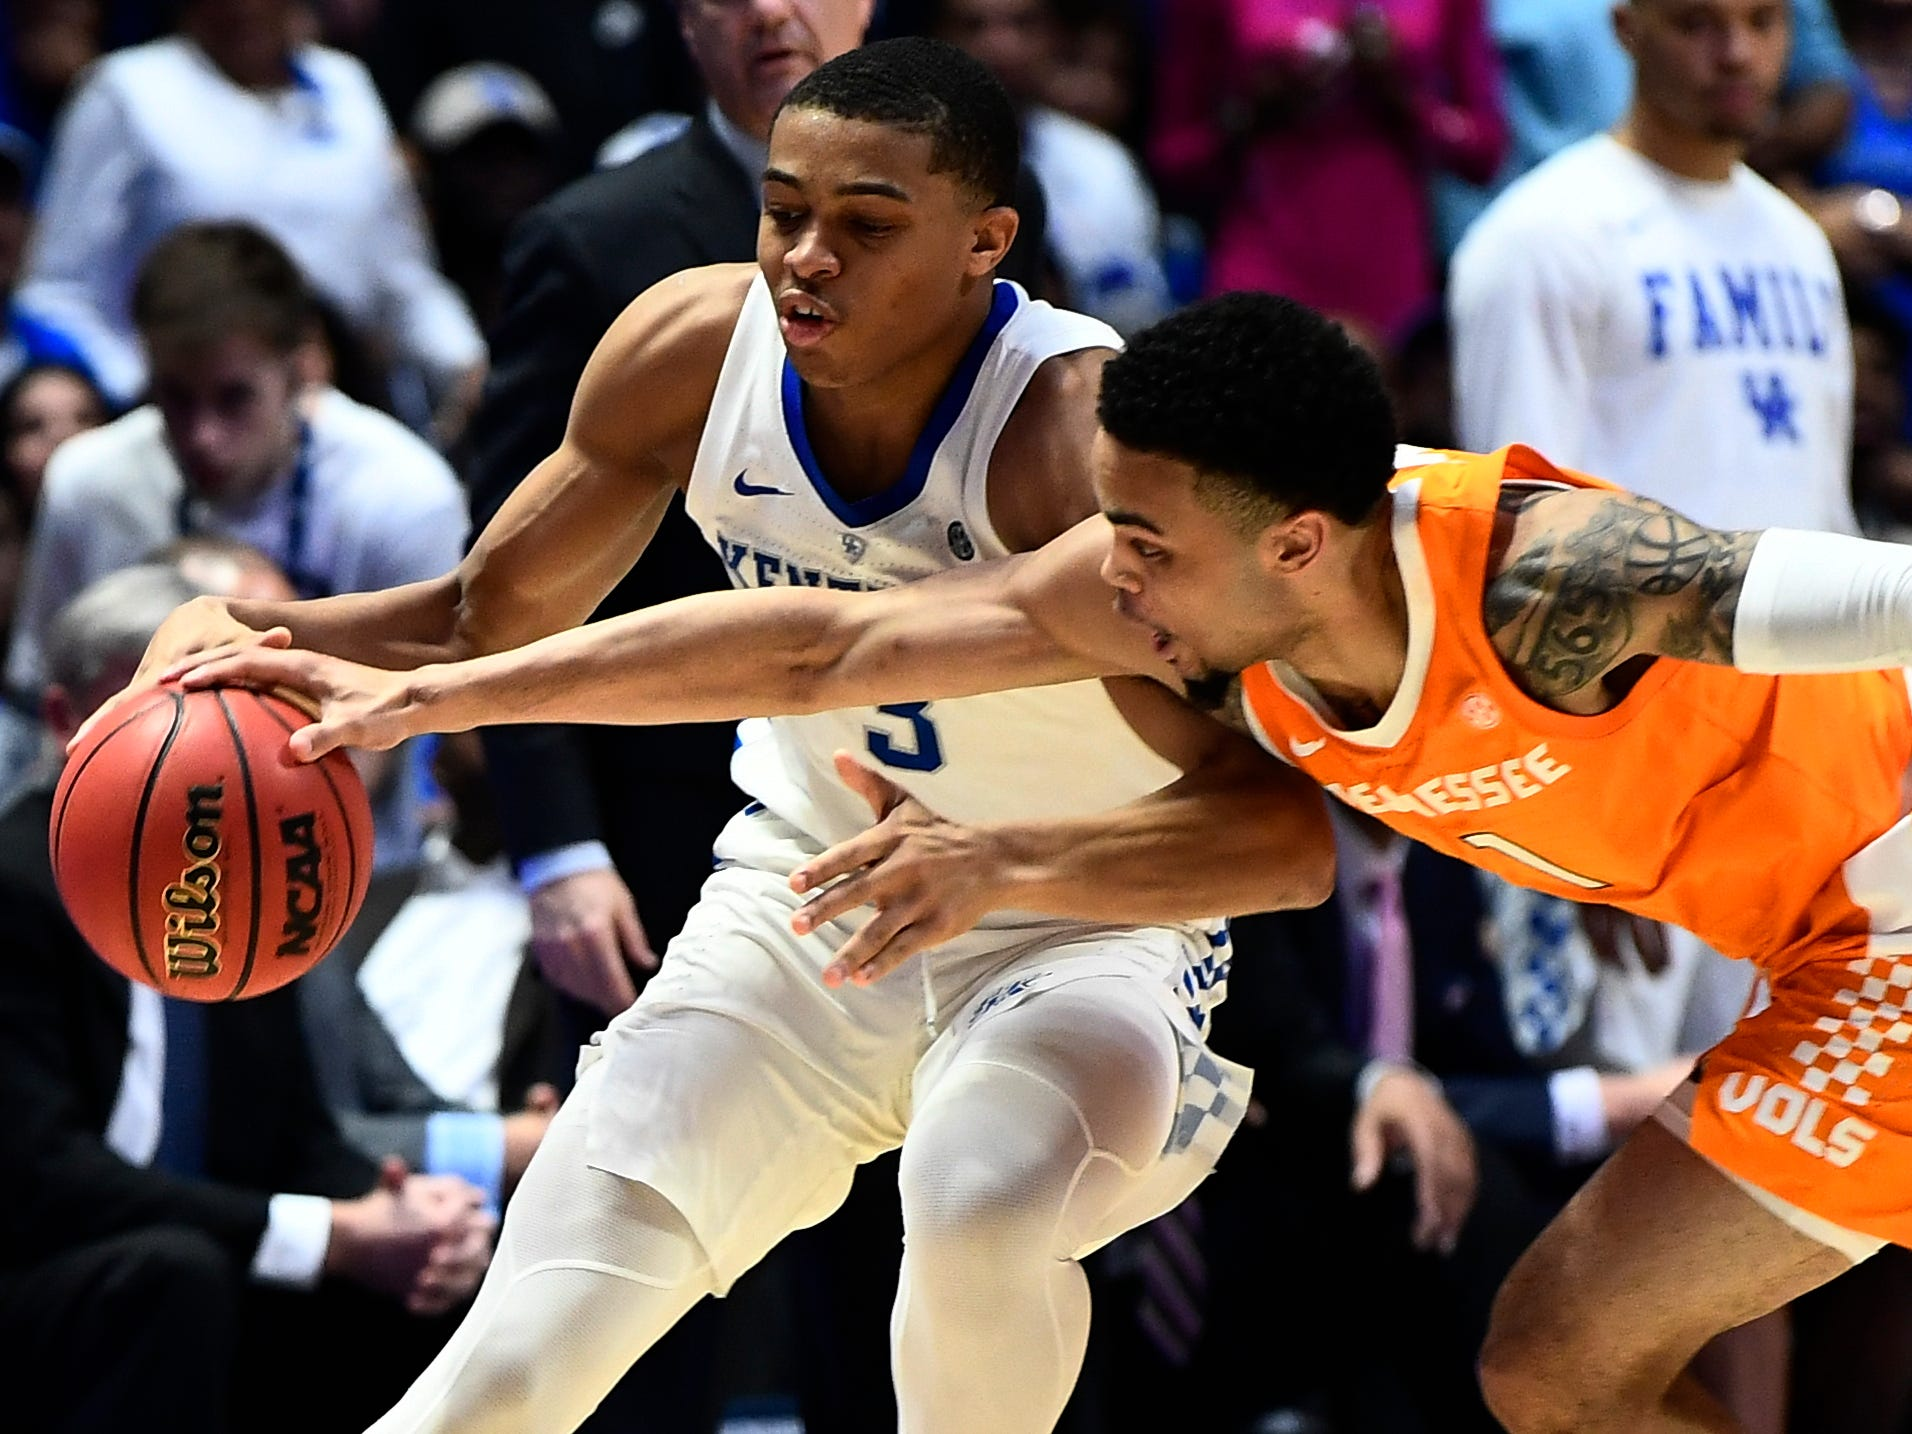 Tennessee basketball meets Auburn with a championship on the line again